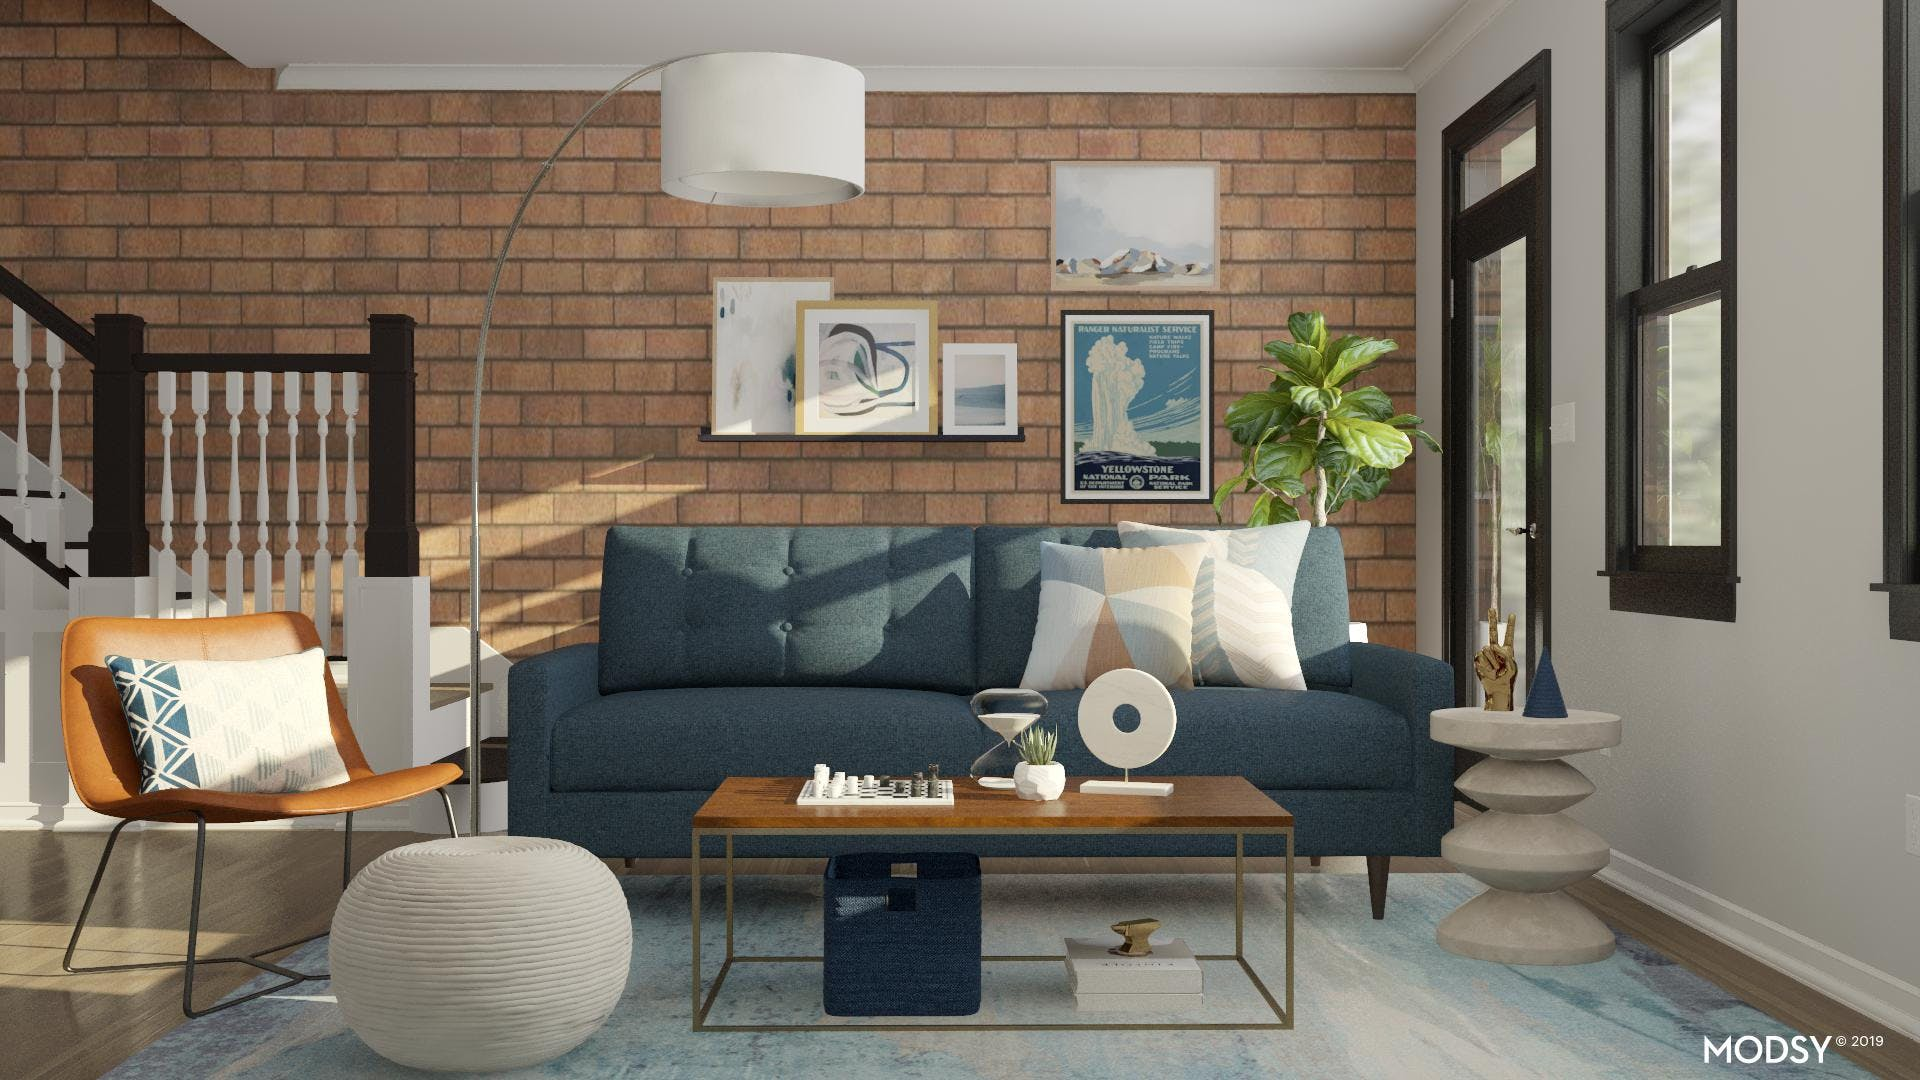 Floating A Sofa To Maximize Your Space